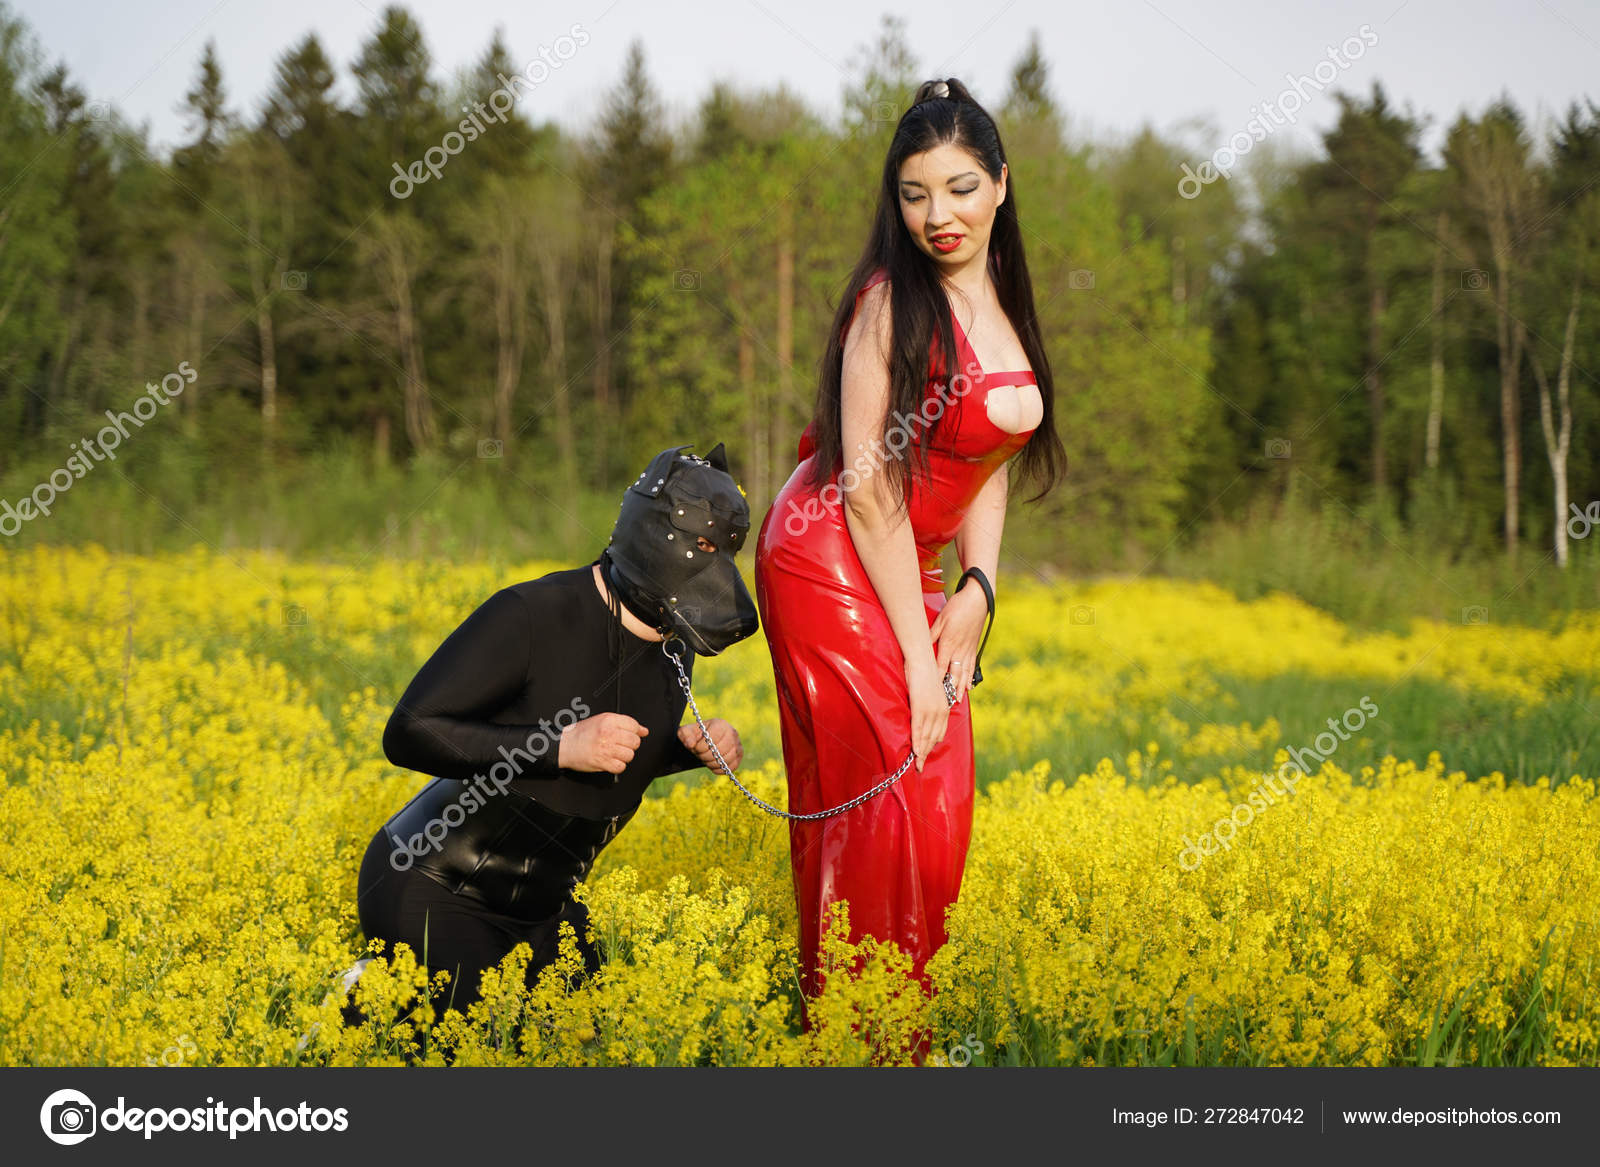 Sexy Kinky Couple Walking Nature Having Roleplay Game